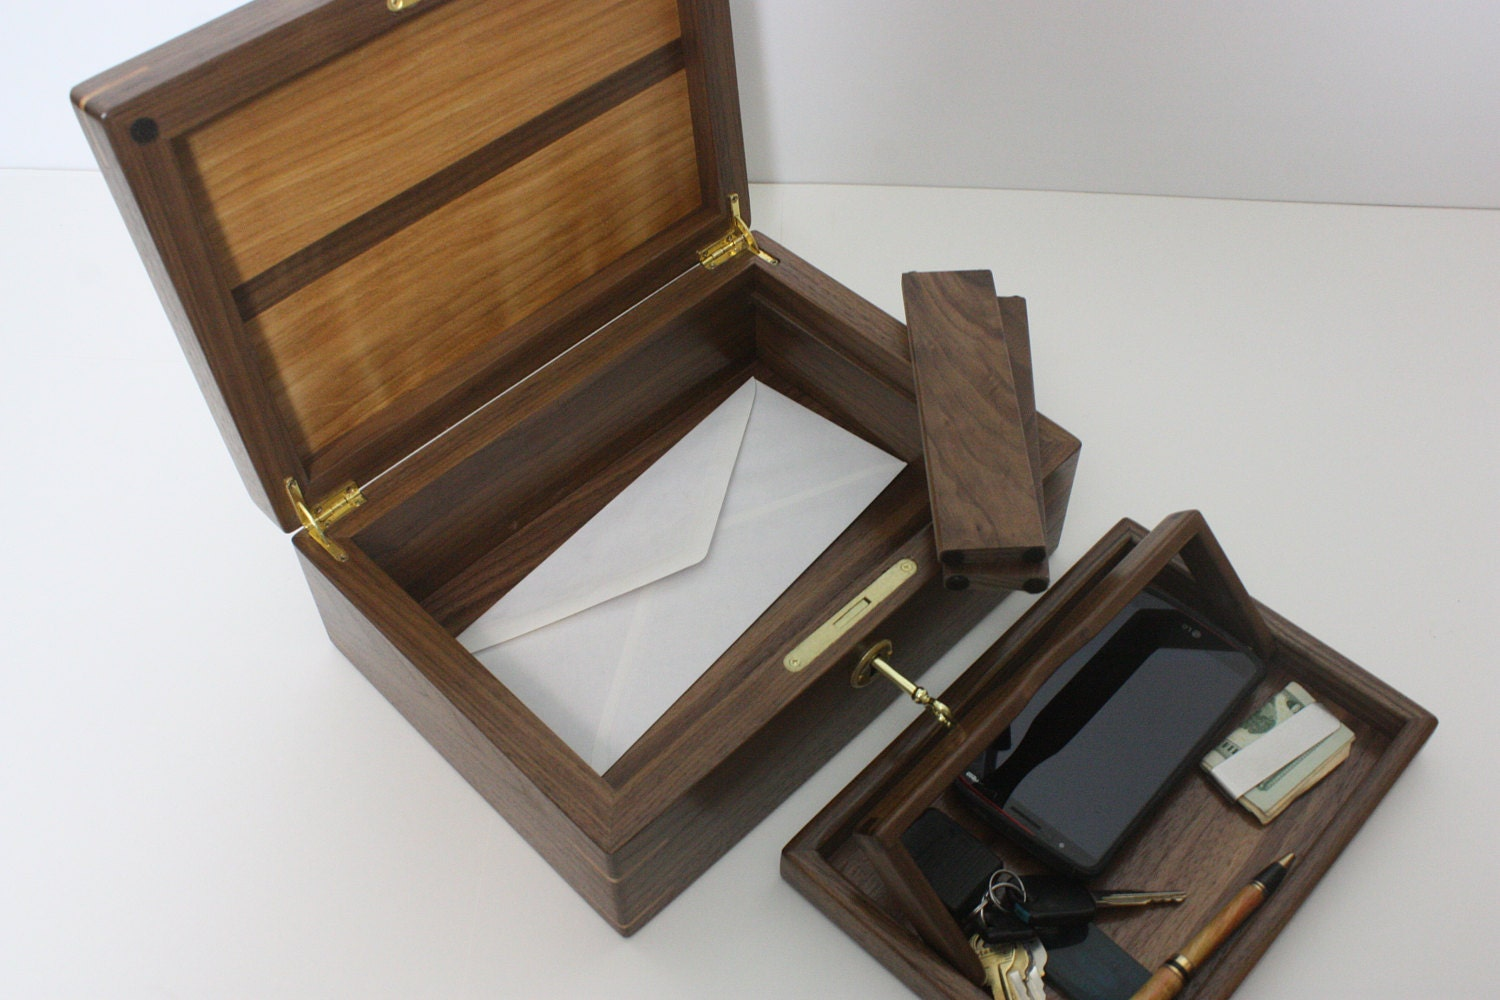 Walnut and Red Birch Wood Valet Box